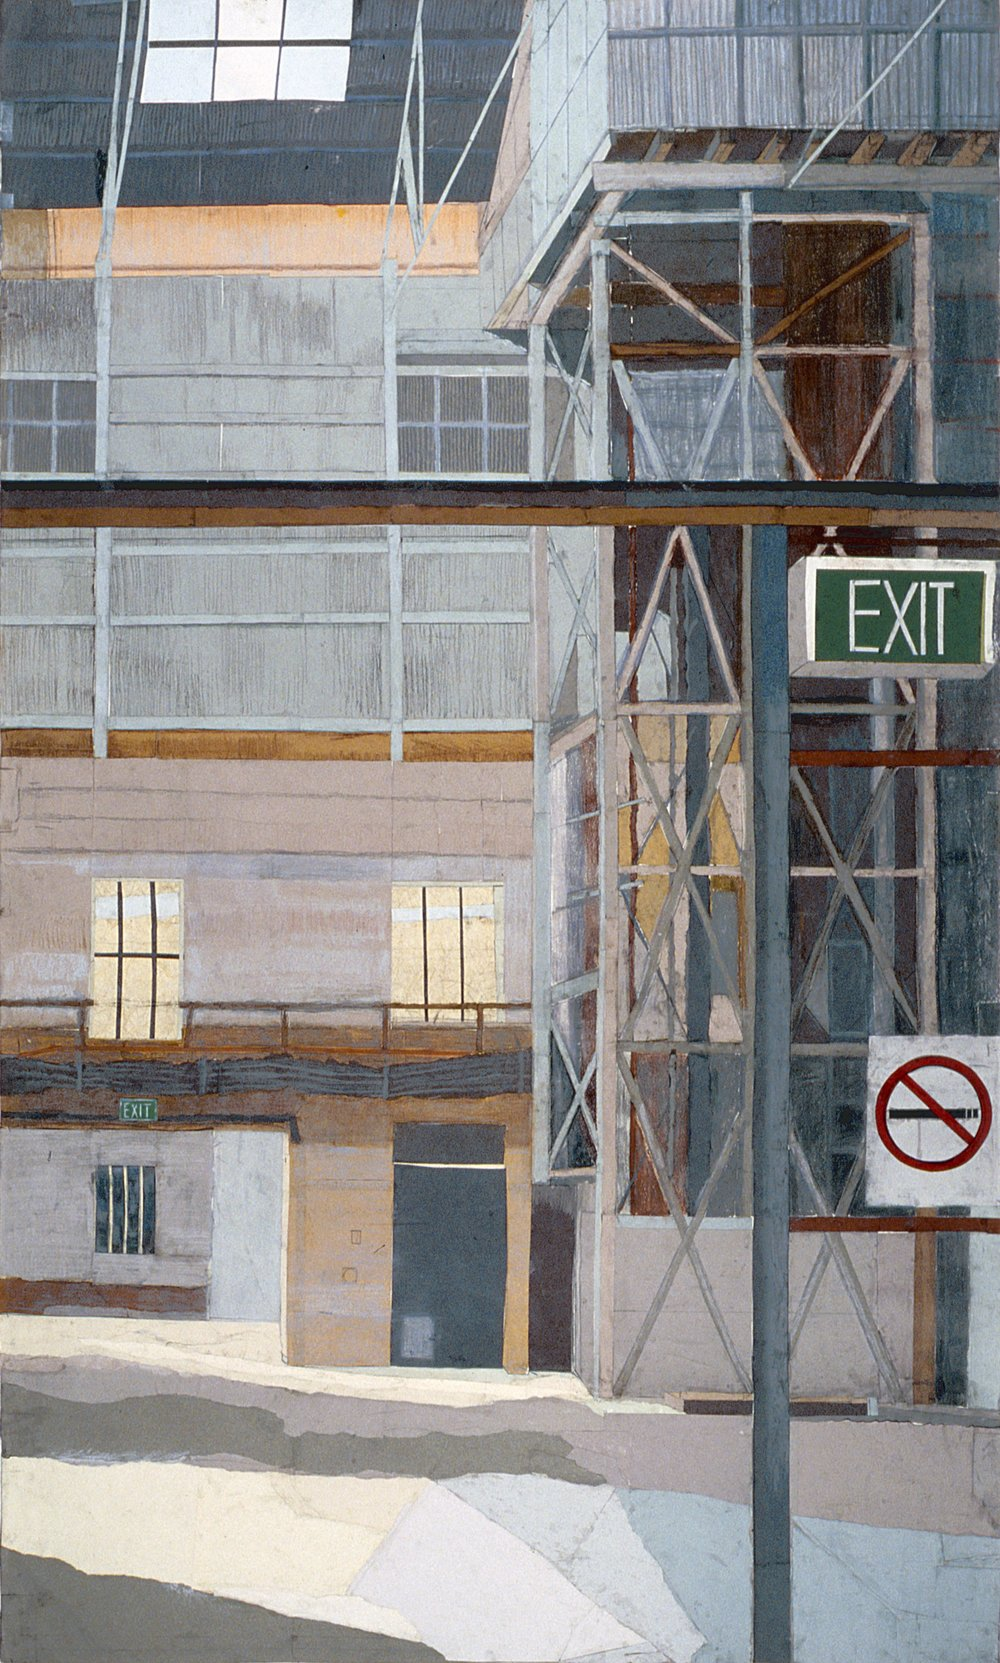 Cockatoo Island #1, mixed media on paper, 240 x 120cm, 2006